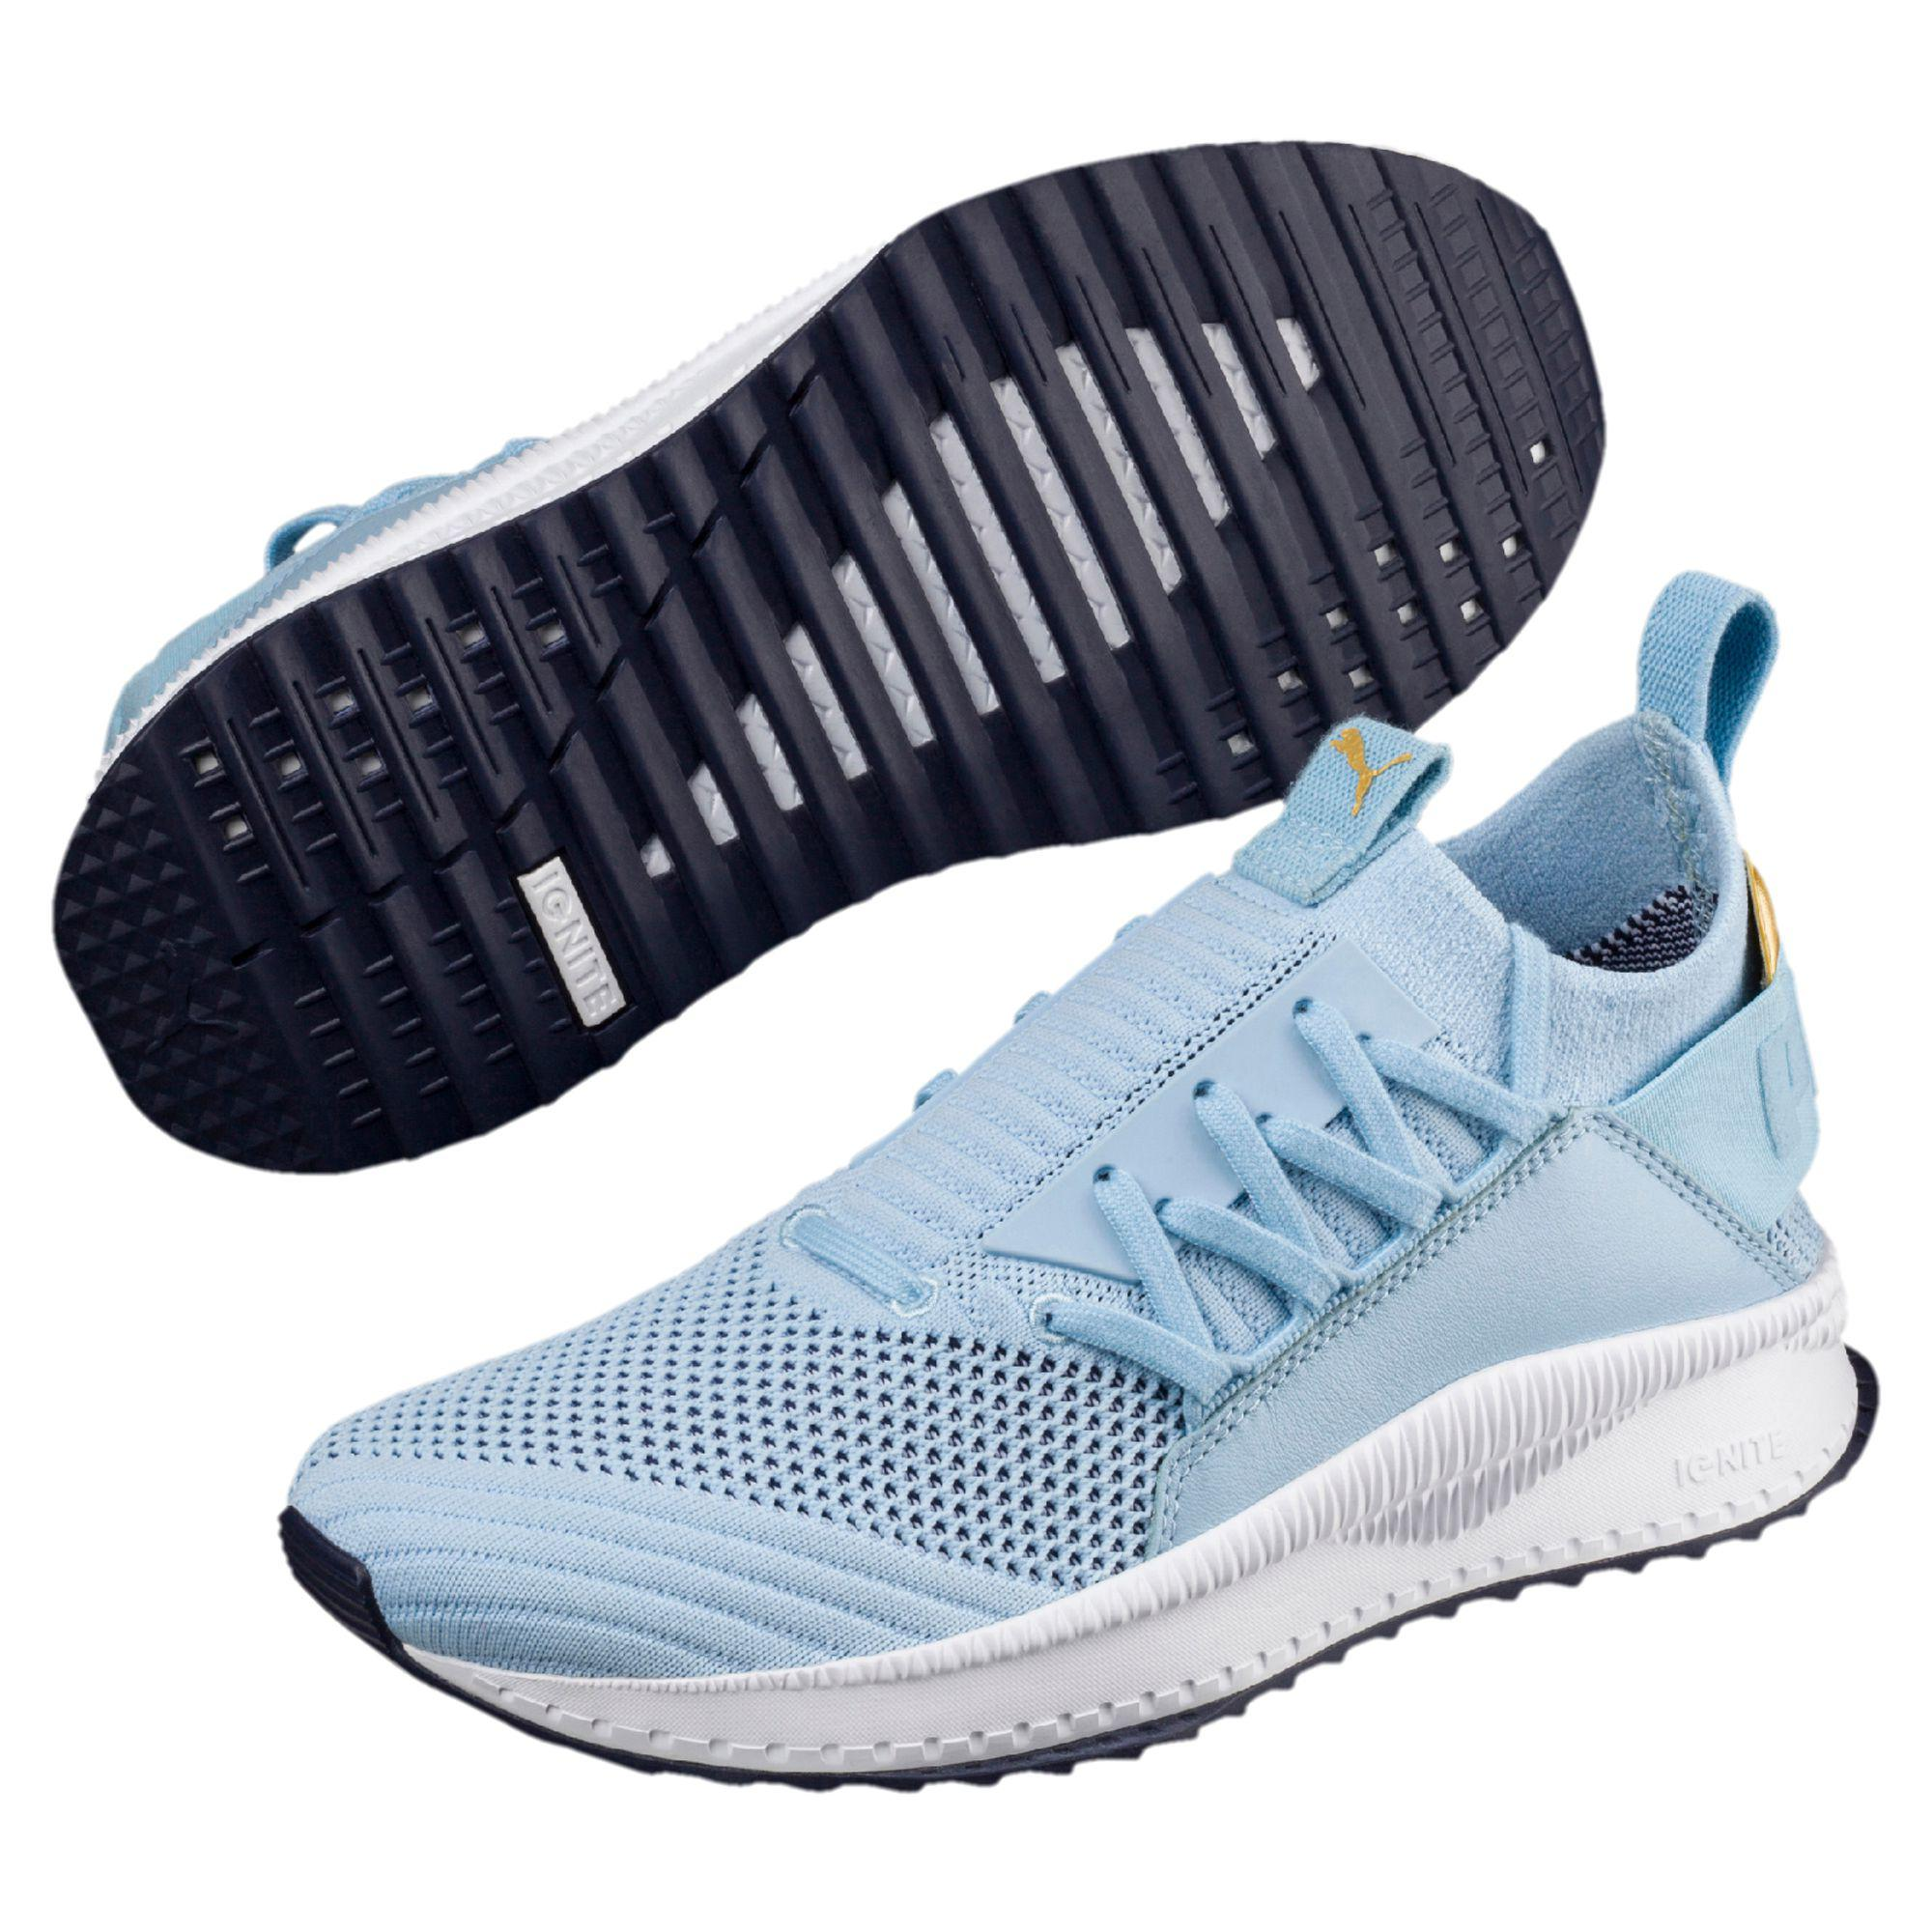 ea62145453a PUMA - Blue Tsugi Jun Colour Shift Women s Sneakers - Lyst. View fullscreen